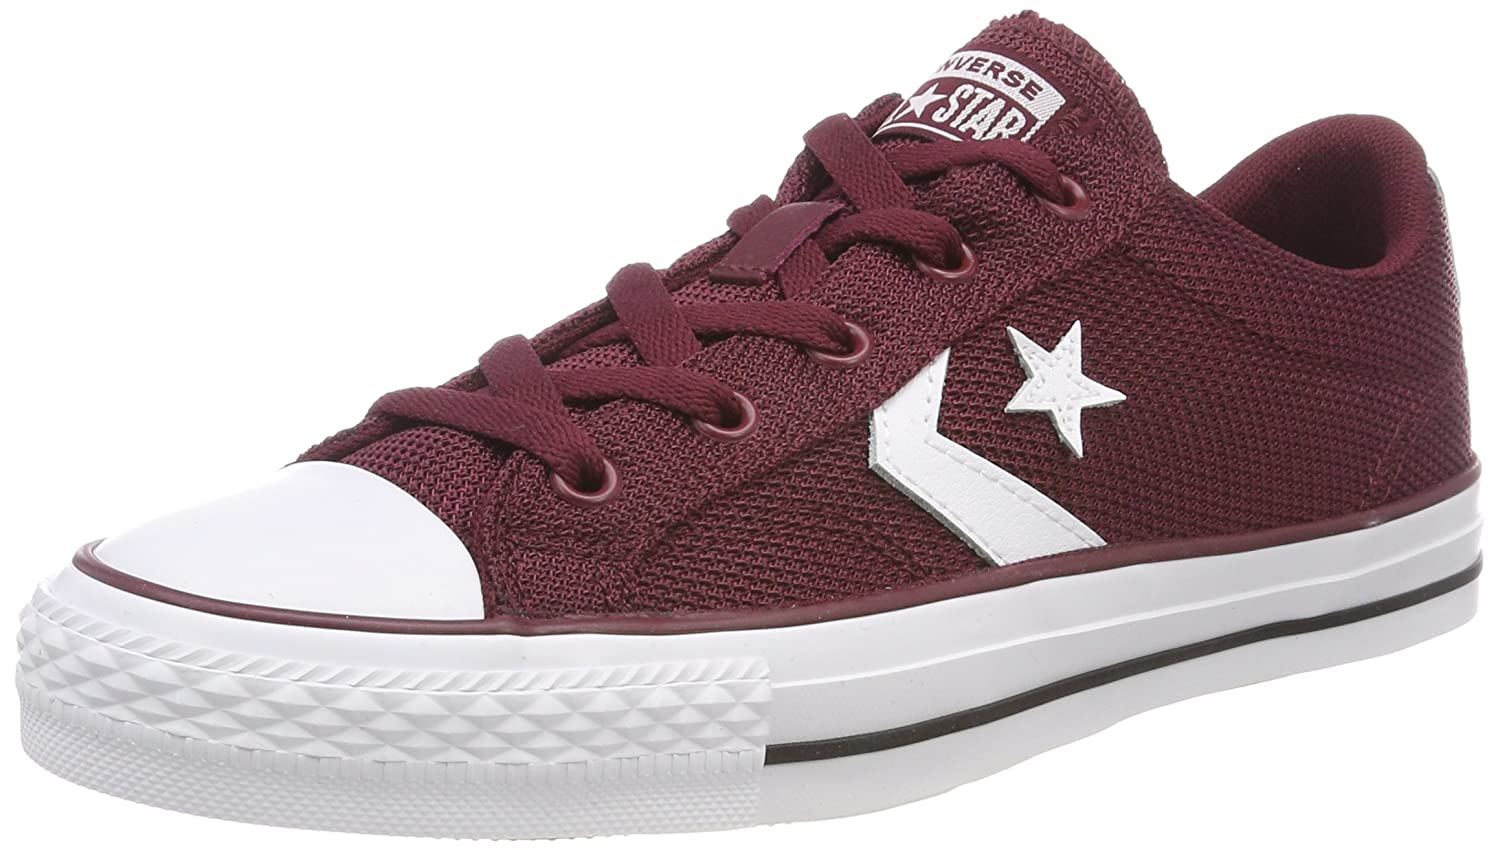 Converse Unisex-Erwachsene Star Player OX Dark Burgundy/White Sneaker  48 EU|Rot (Dark Burgundy/White 628)